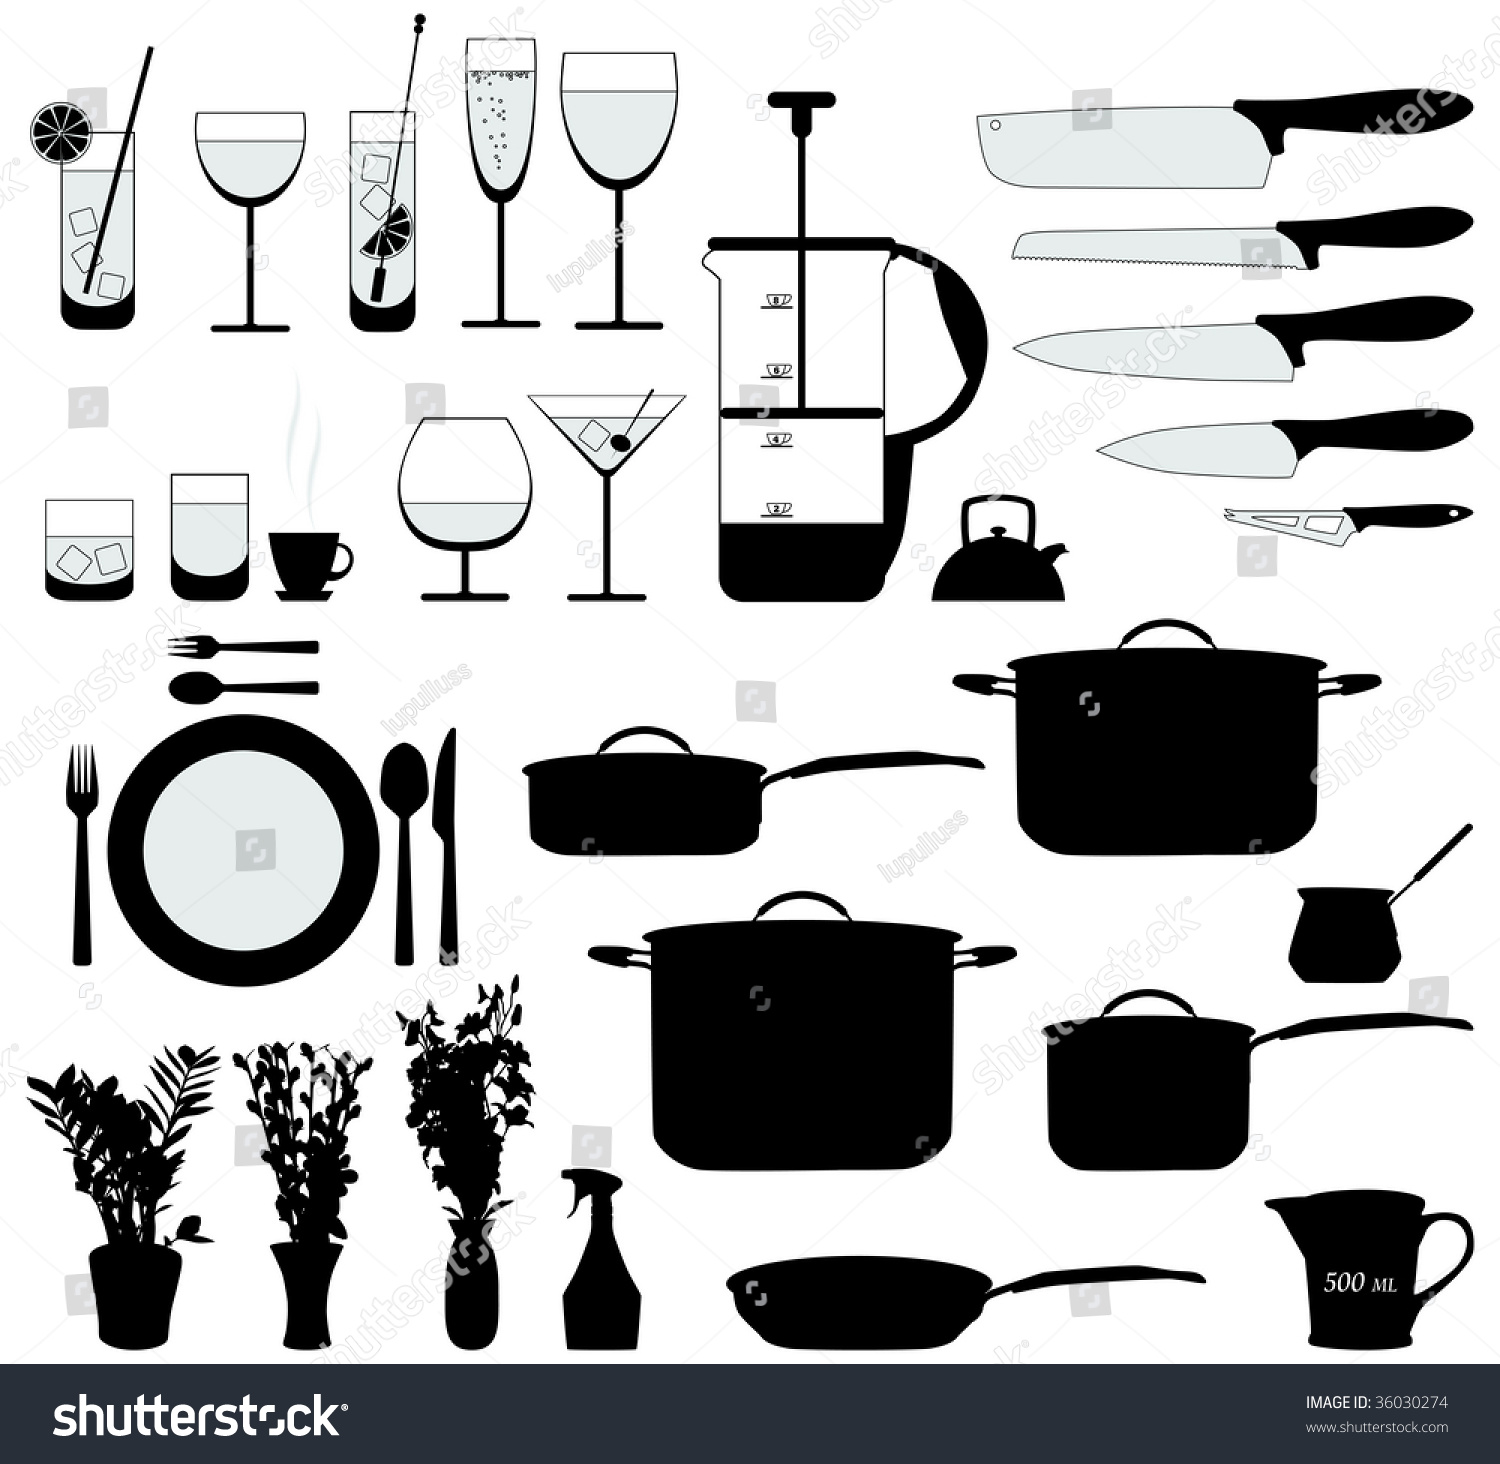 dishes pan mixer other kitchen objects stock vector 36030274